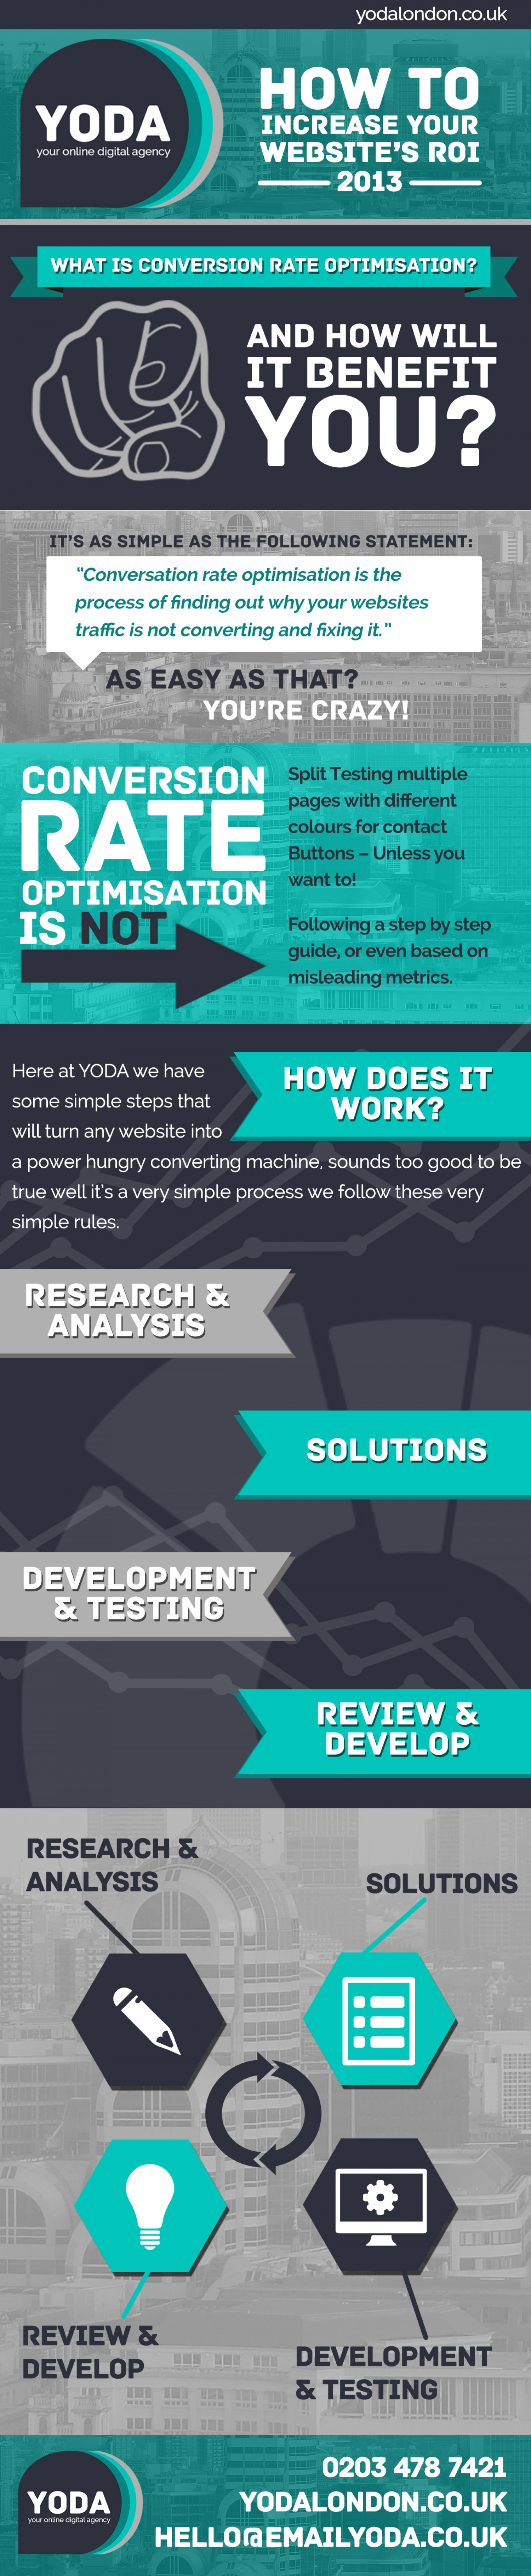 YODA London: How to Increase ROI Infographic